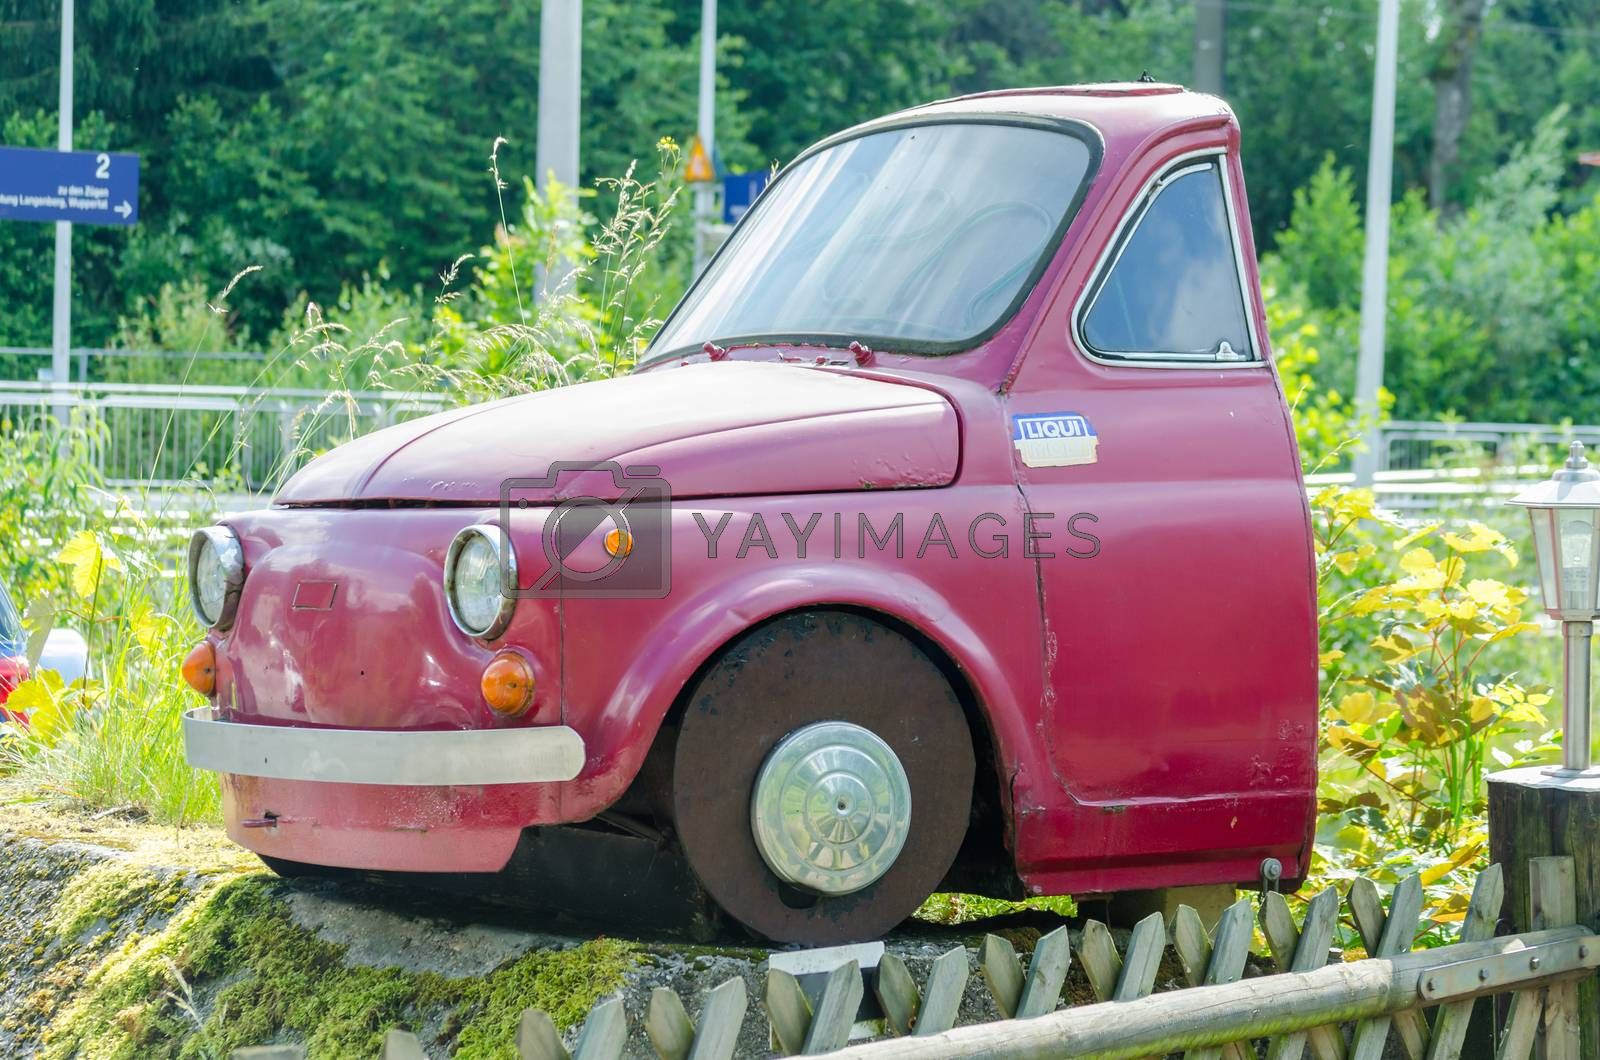 Essen, Nrw, Germany - June 13, 2014: Velber Langenberg district is that half red Fiat 500 car behind the front seats separated. By overgrown grass. Fiat SpA is an Italian automobile manufacturer, engine manufacturer, financial and industrial group based in Turin in the Piedmont region.